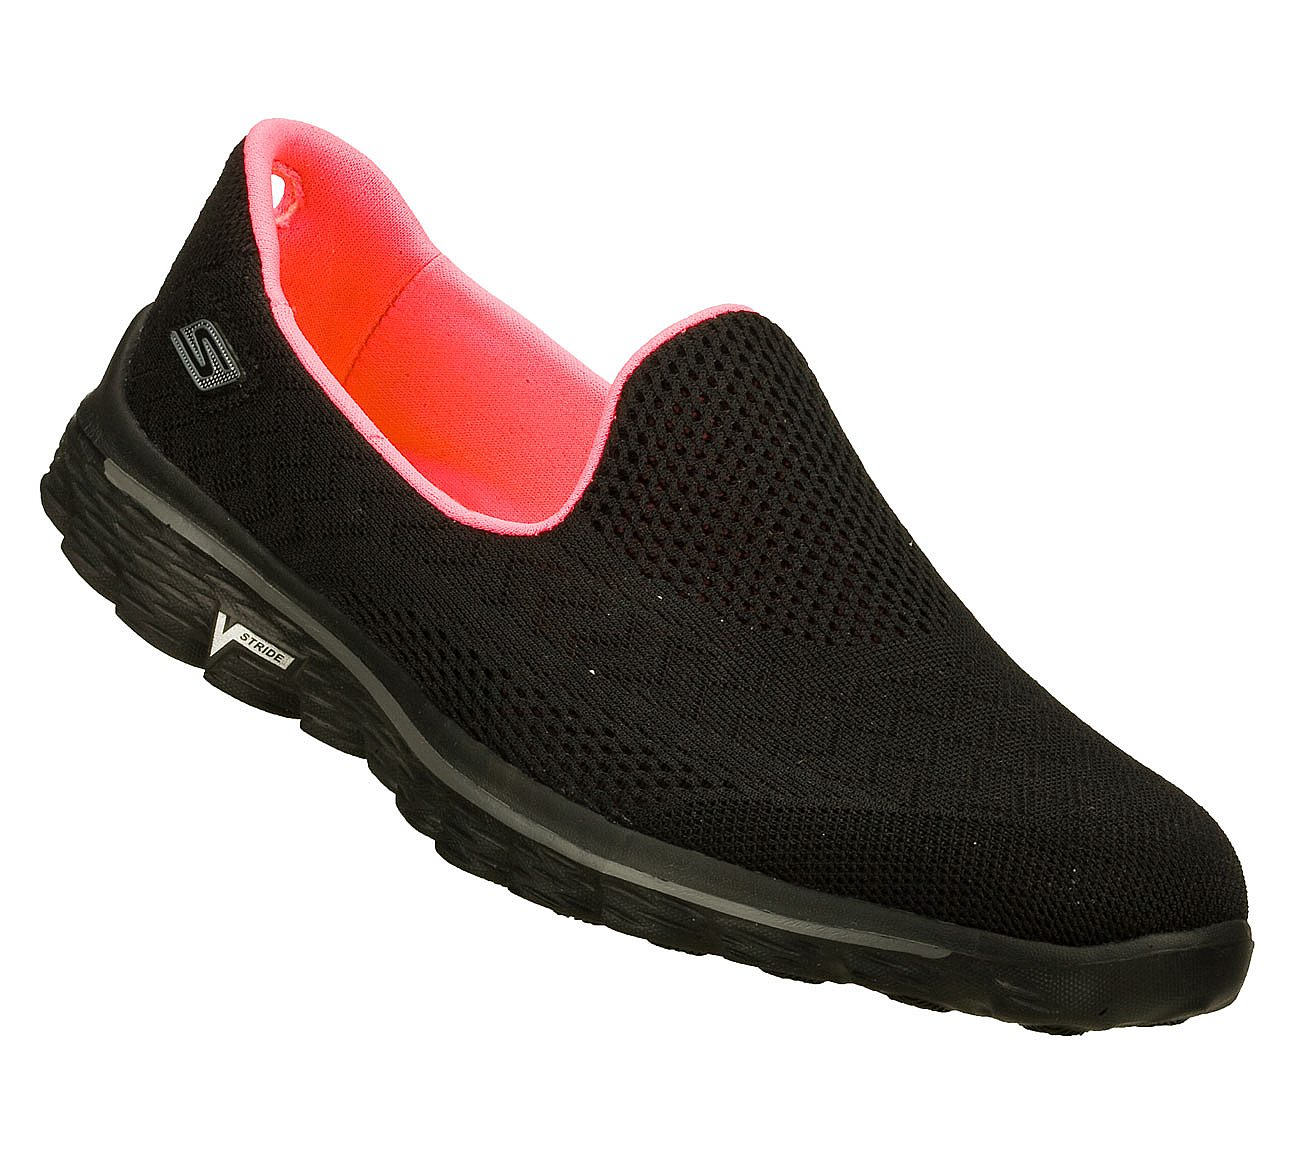 Skechers GOwalk 2 - Hyper Walking Shoes